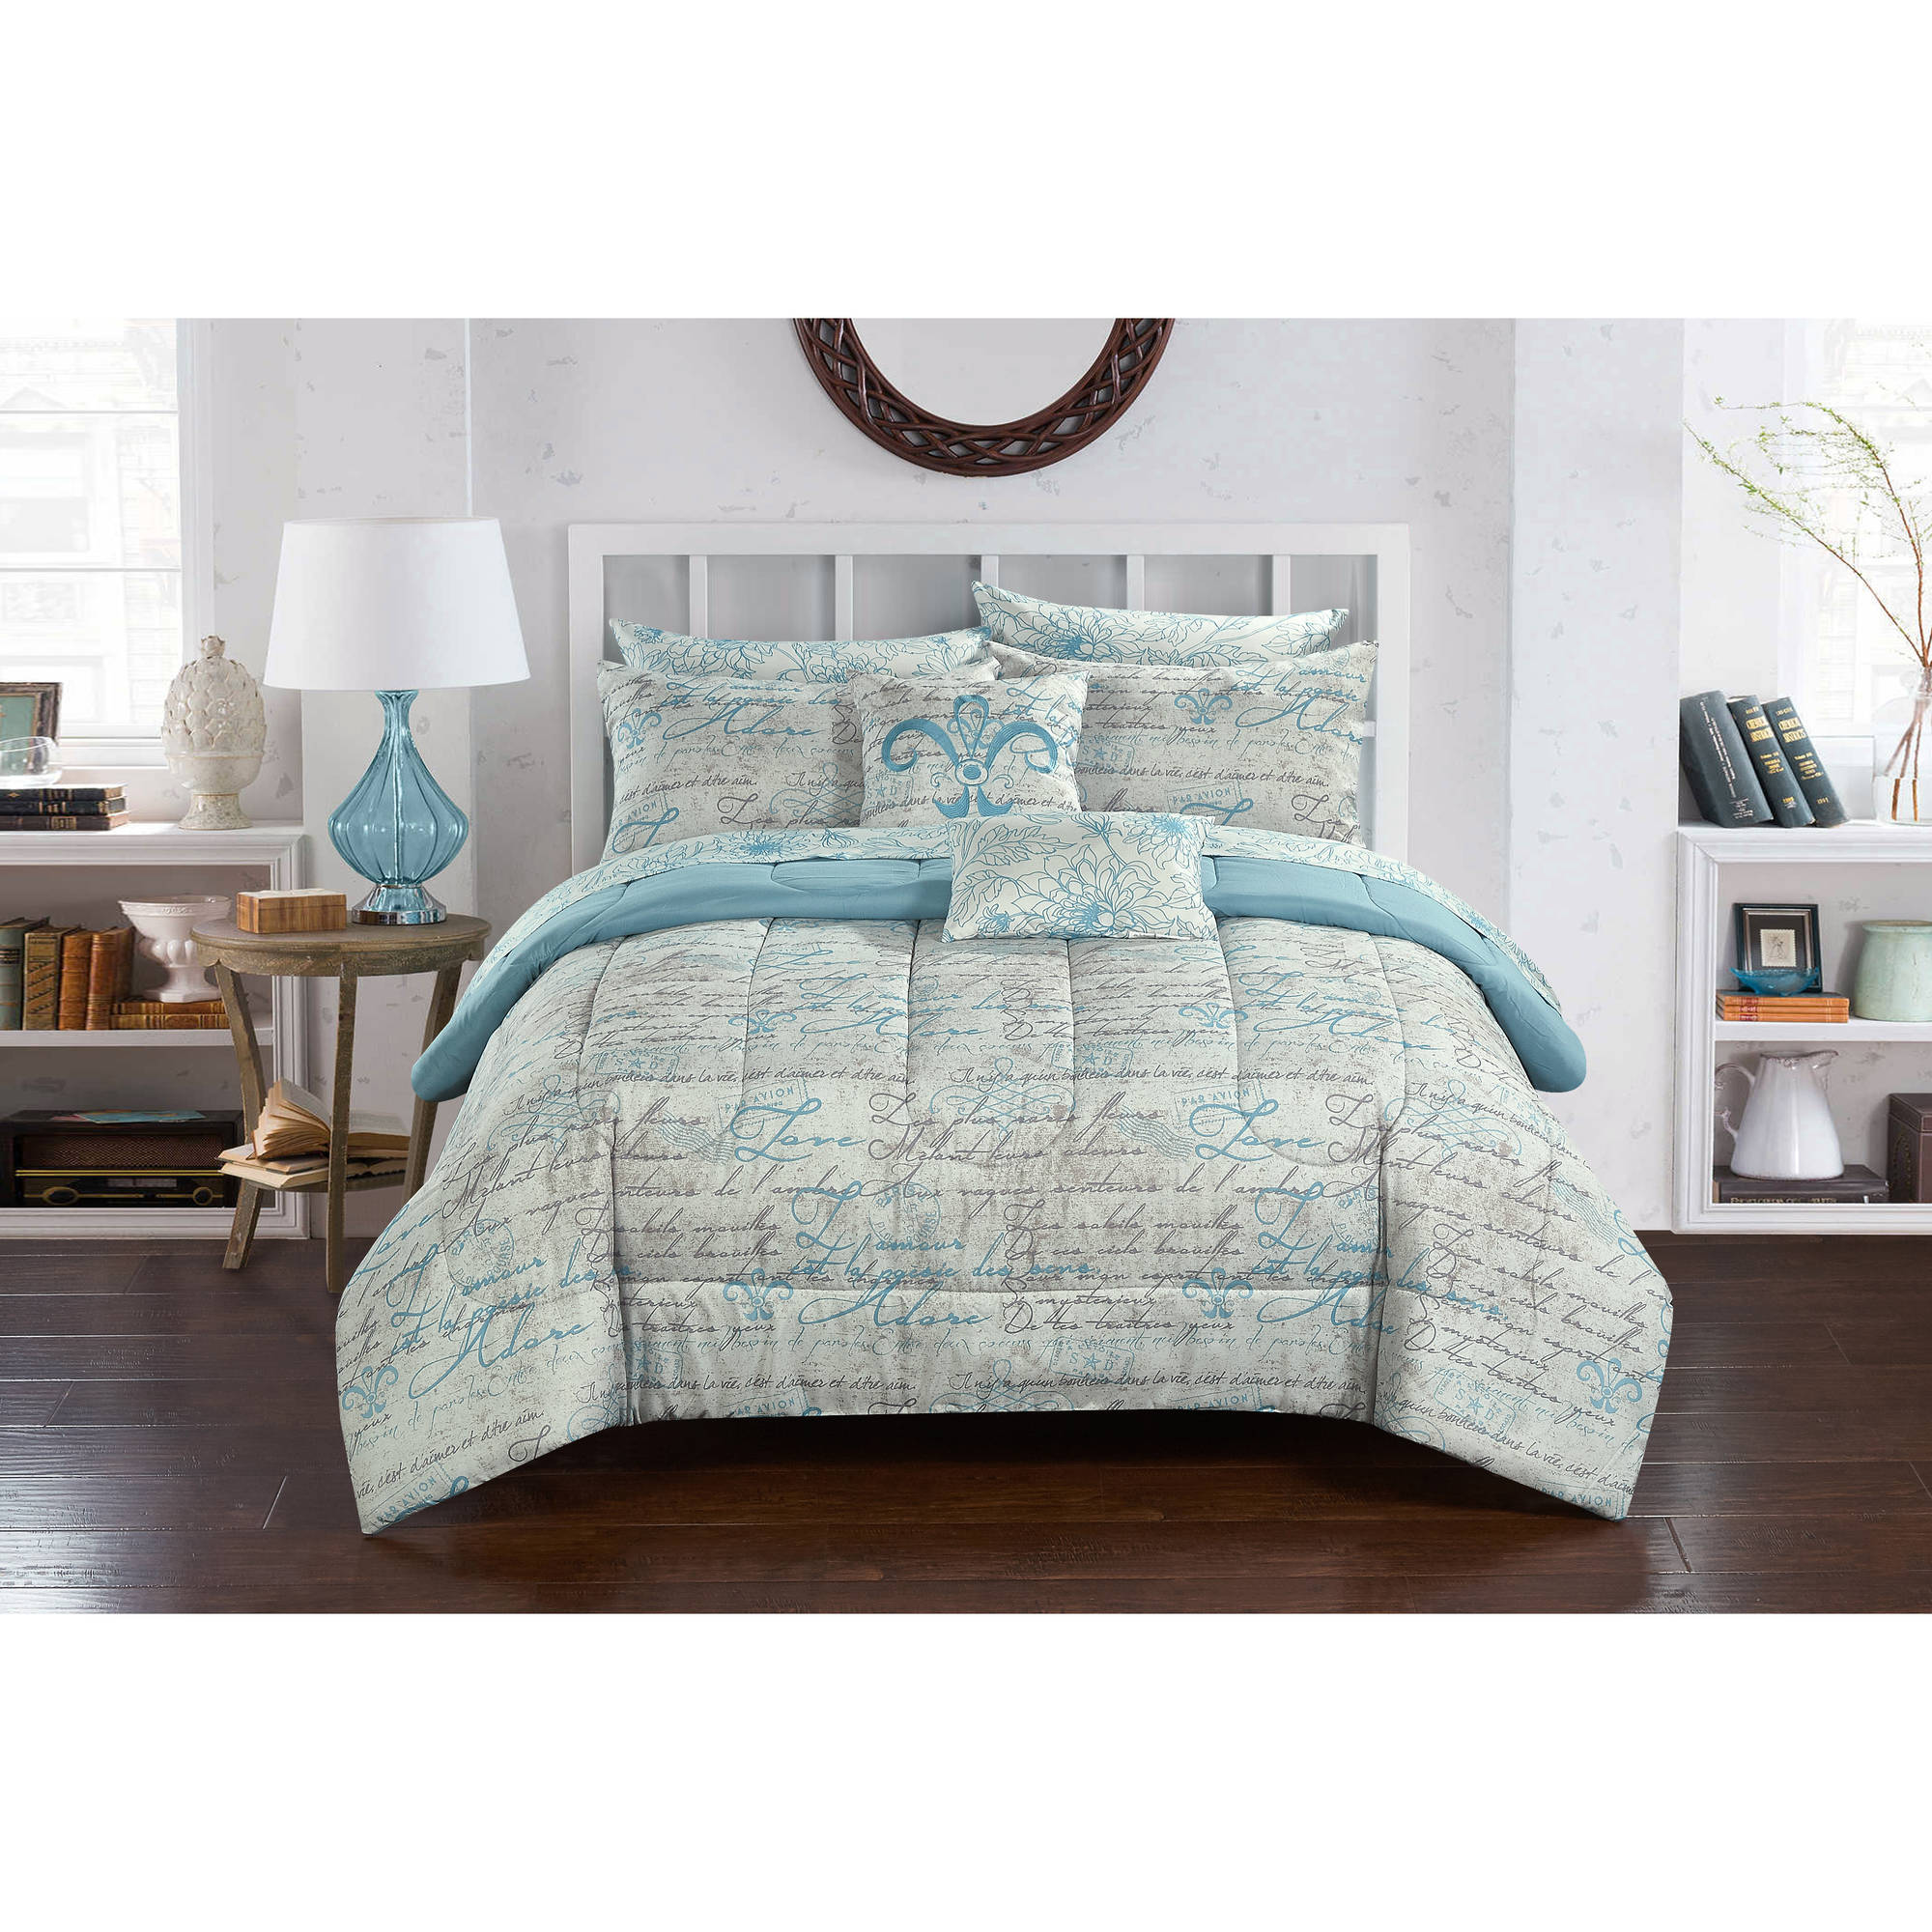 Casa Paris Bed-in-a-Bag Bedding Set